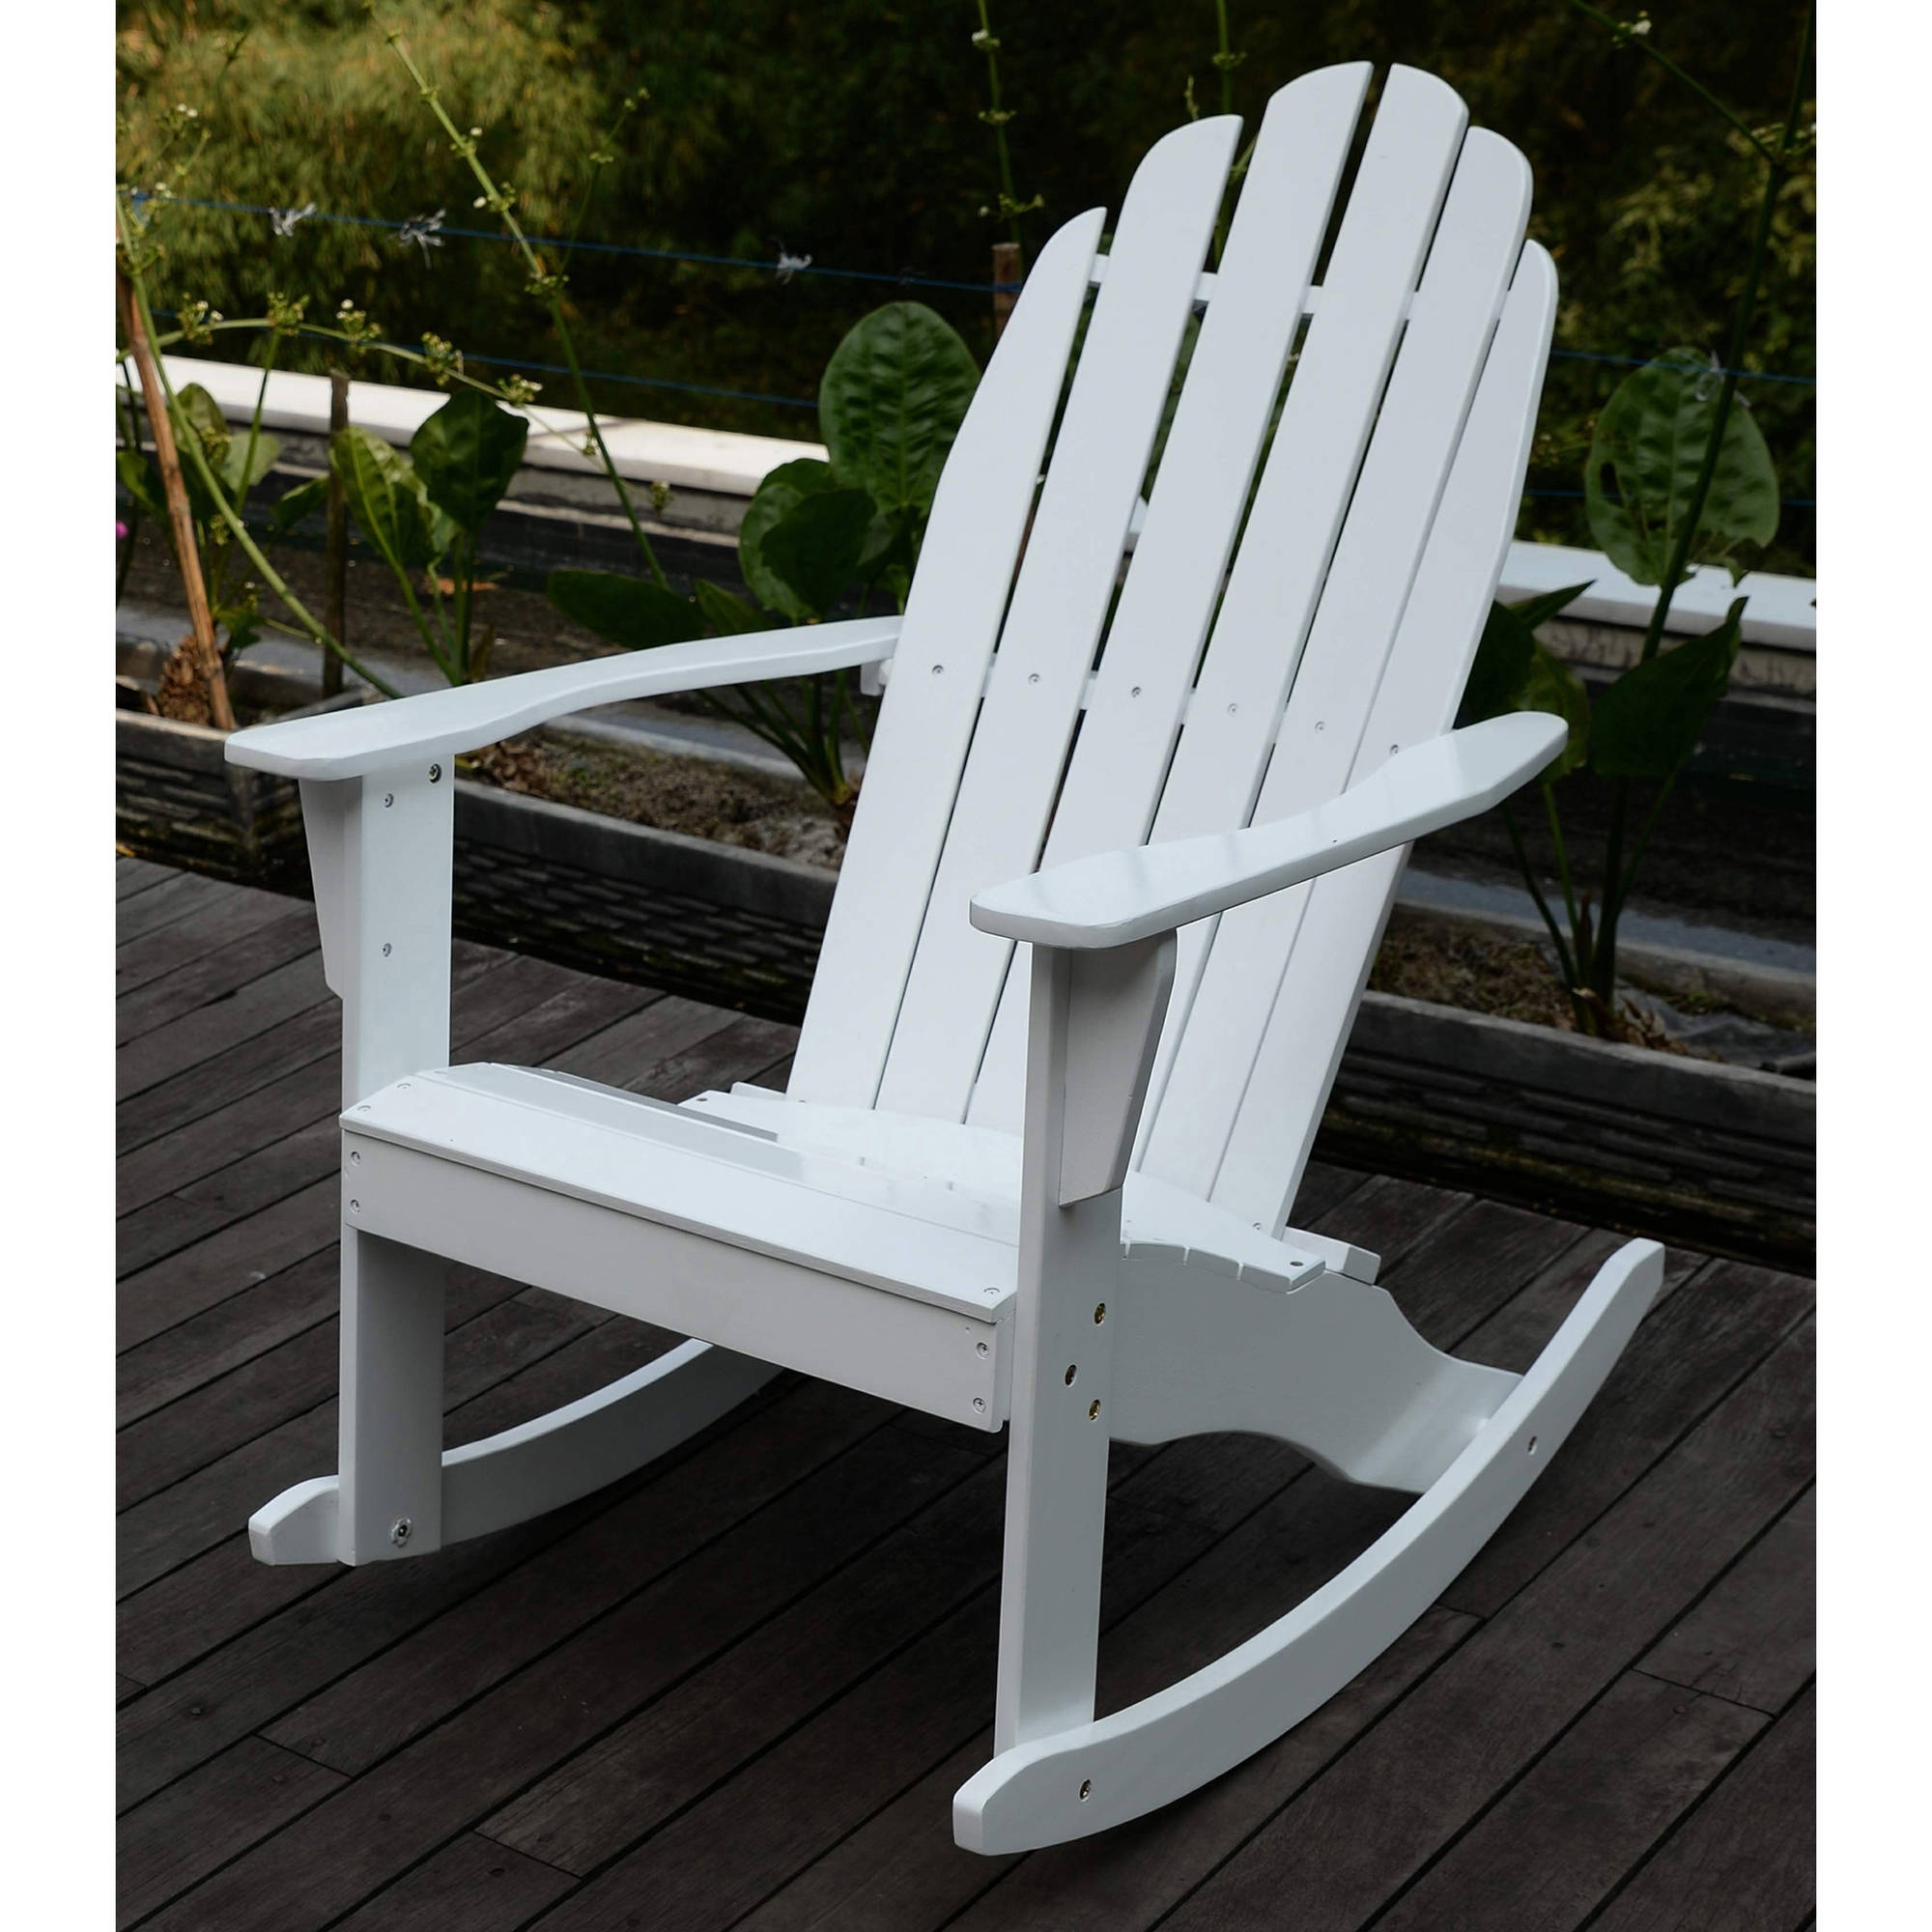 Outdoor Furniture Rockers Patio Chairs Western Rocking Chair (View 9 of 15)